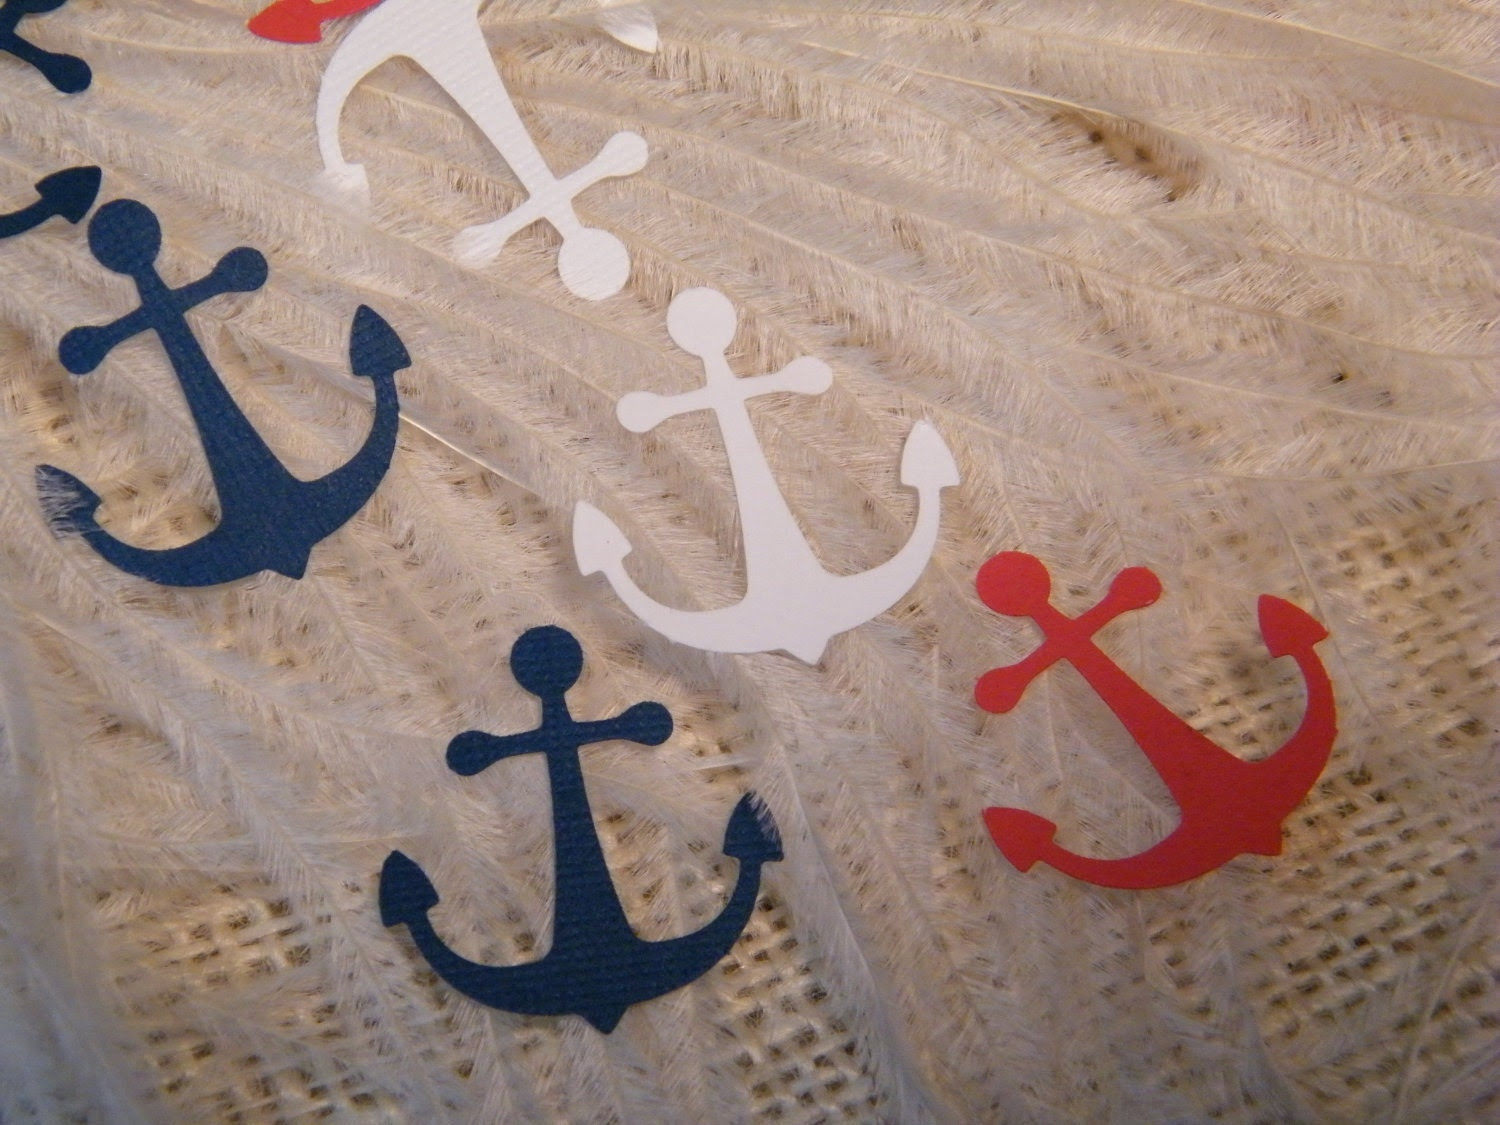 Party Decoration - Lot of 200 Anchor Confetti - Red -White- Blue / Navy - 4th of July - Patriotic - Boys Birthday Party - Nautical Confetti